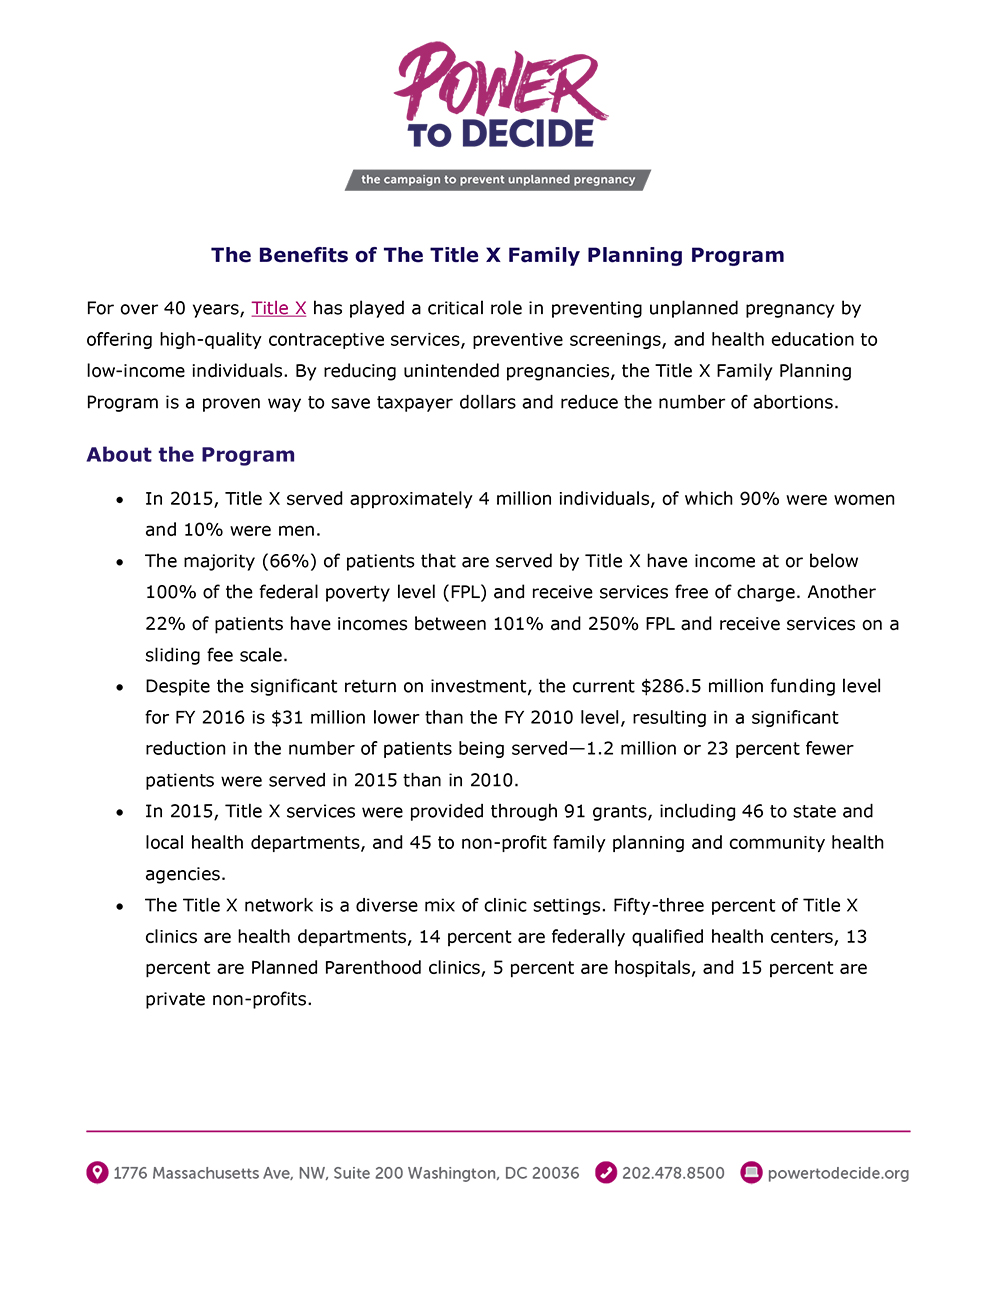 The Benefits of the Title X Family Planning Program